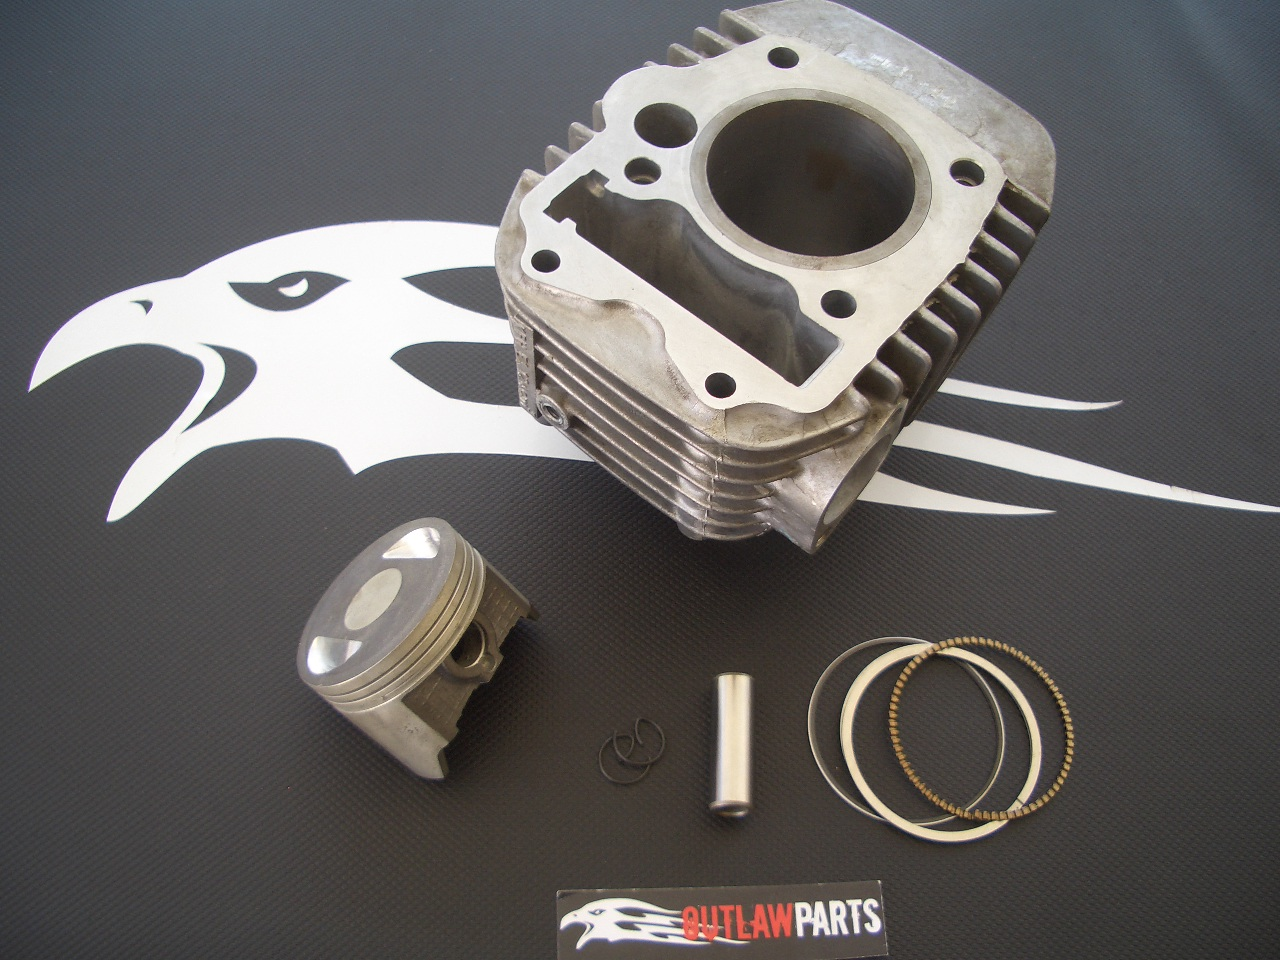 Tuningcylinderkit 143ccm (56mm)